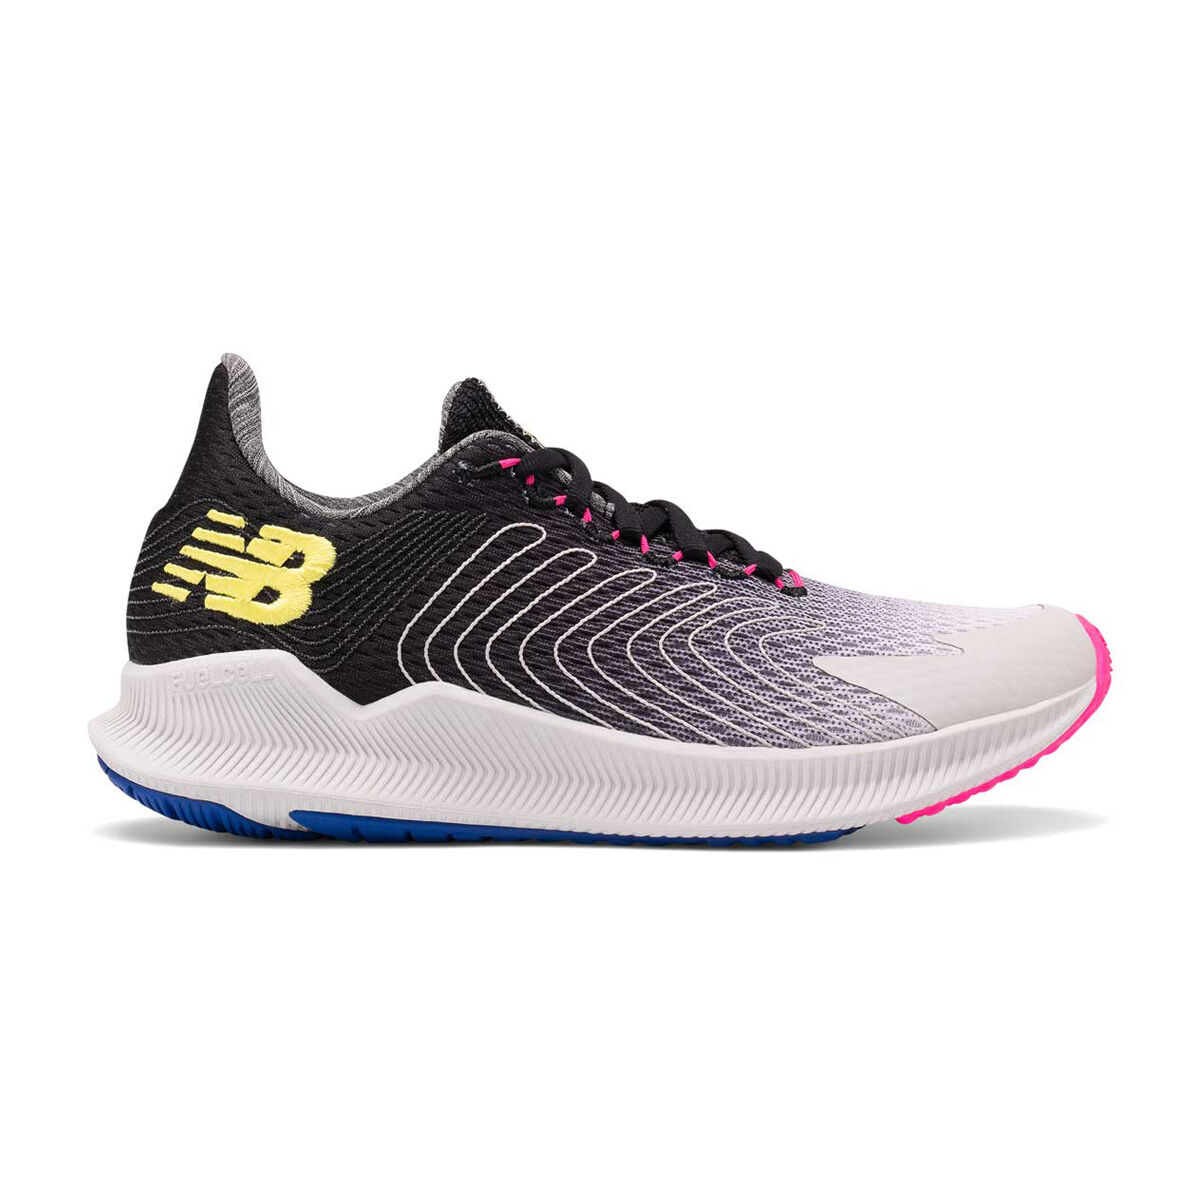 New Balance FuelCell Propel Womens